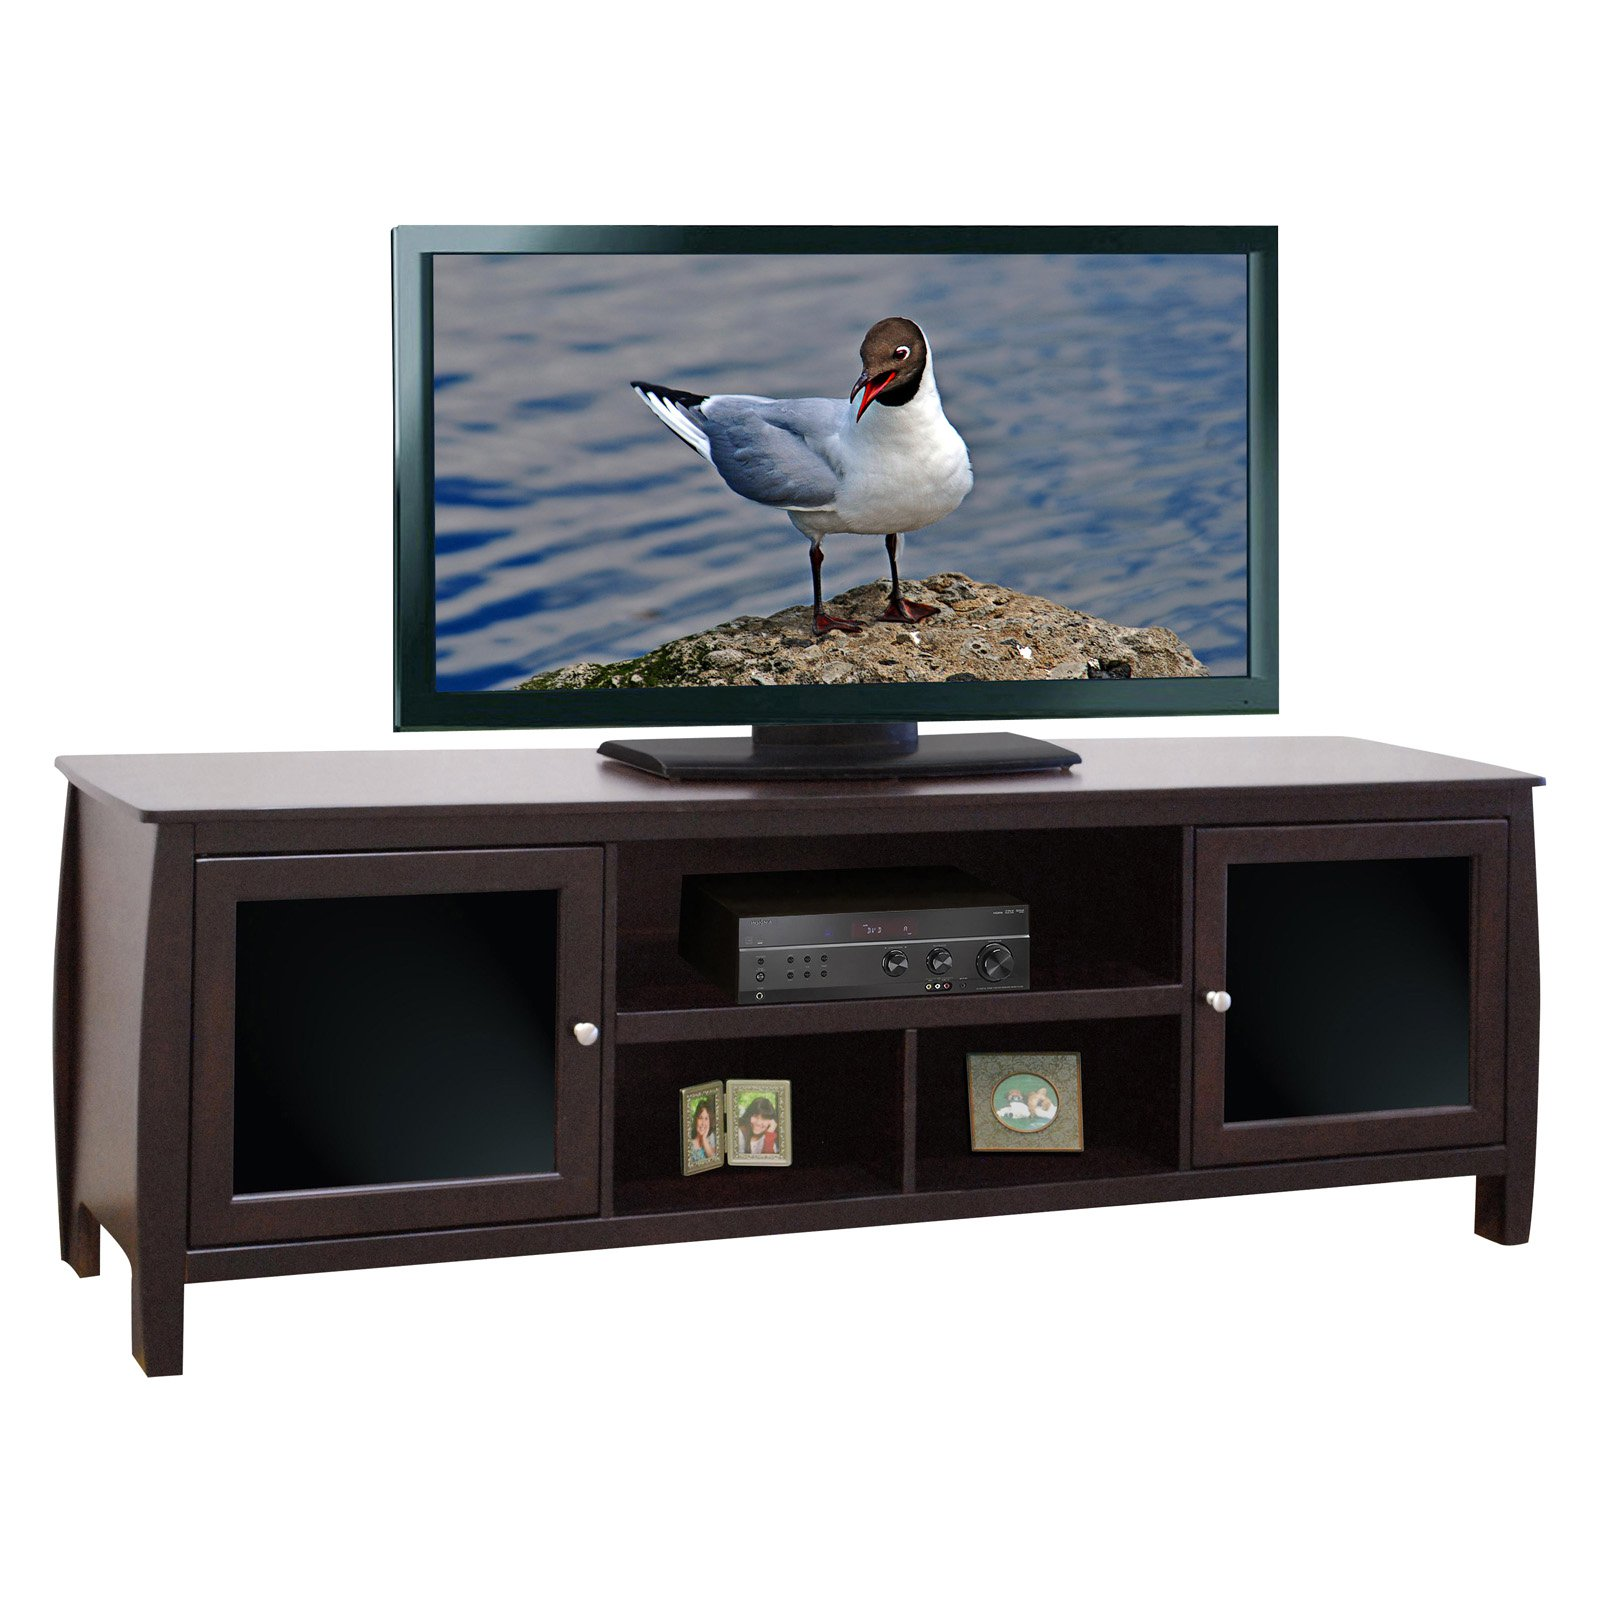 Legends CV1234.MOC The Curve 76 in. TV Console